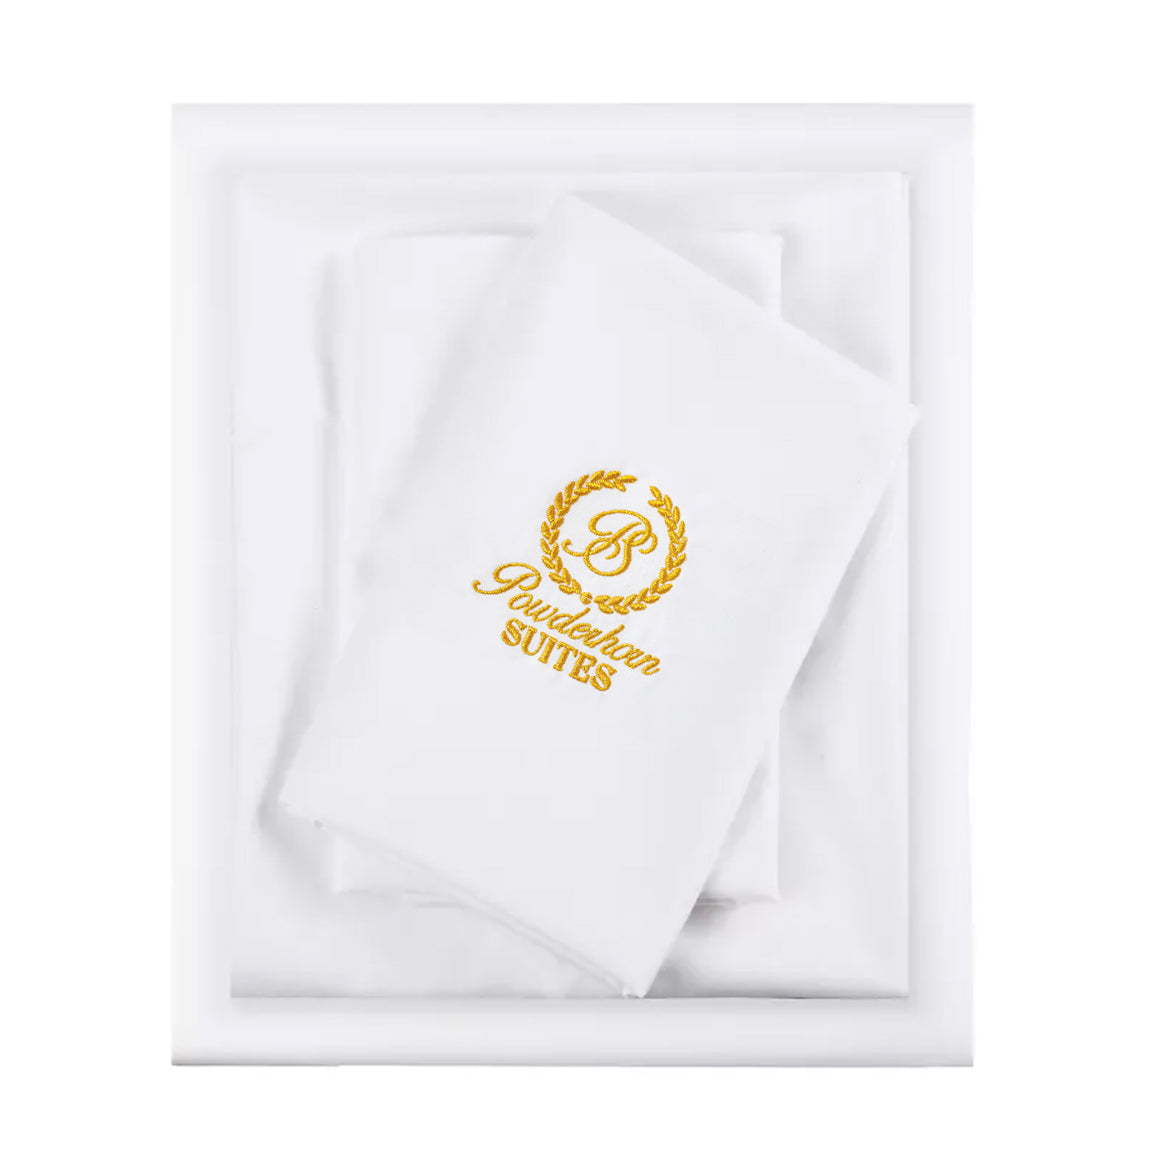 "Prof ""Powderhorn Suites"" Sheet Set [Pre-order]"